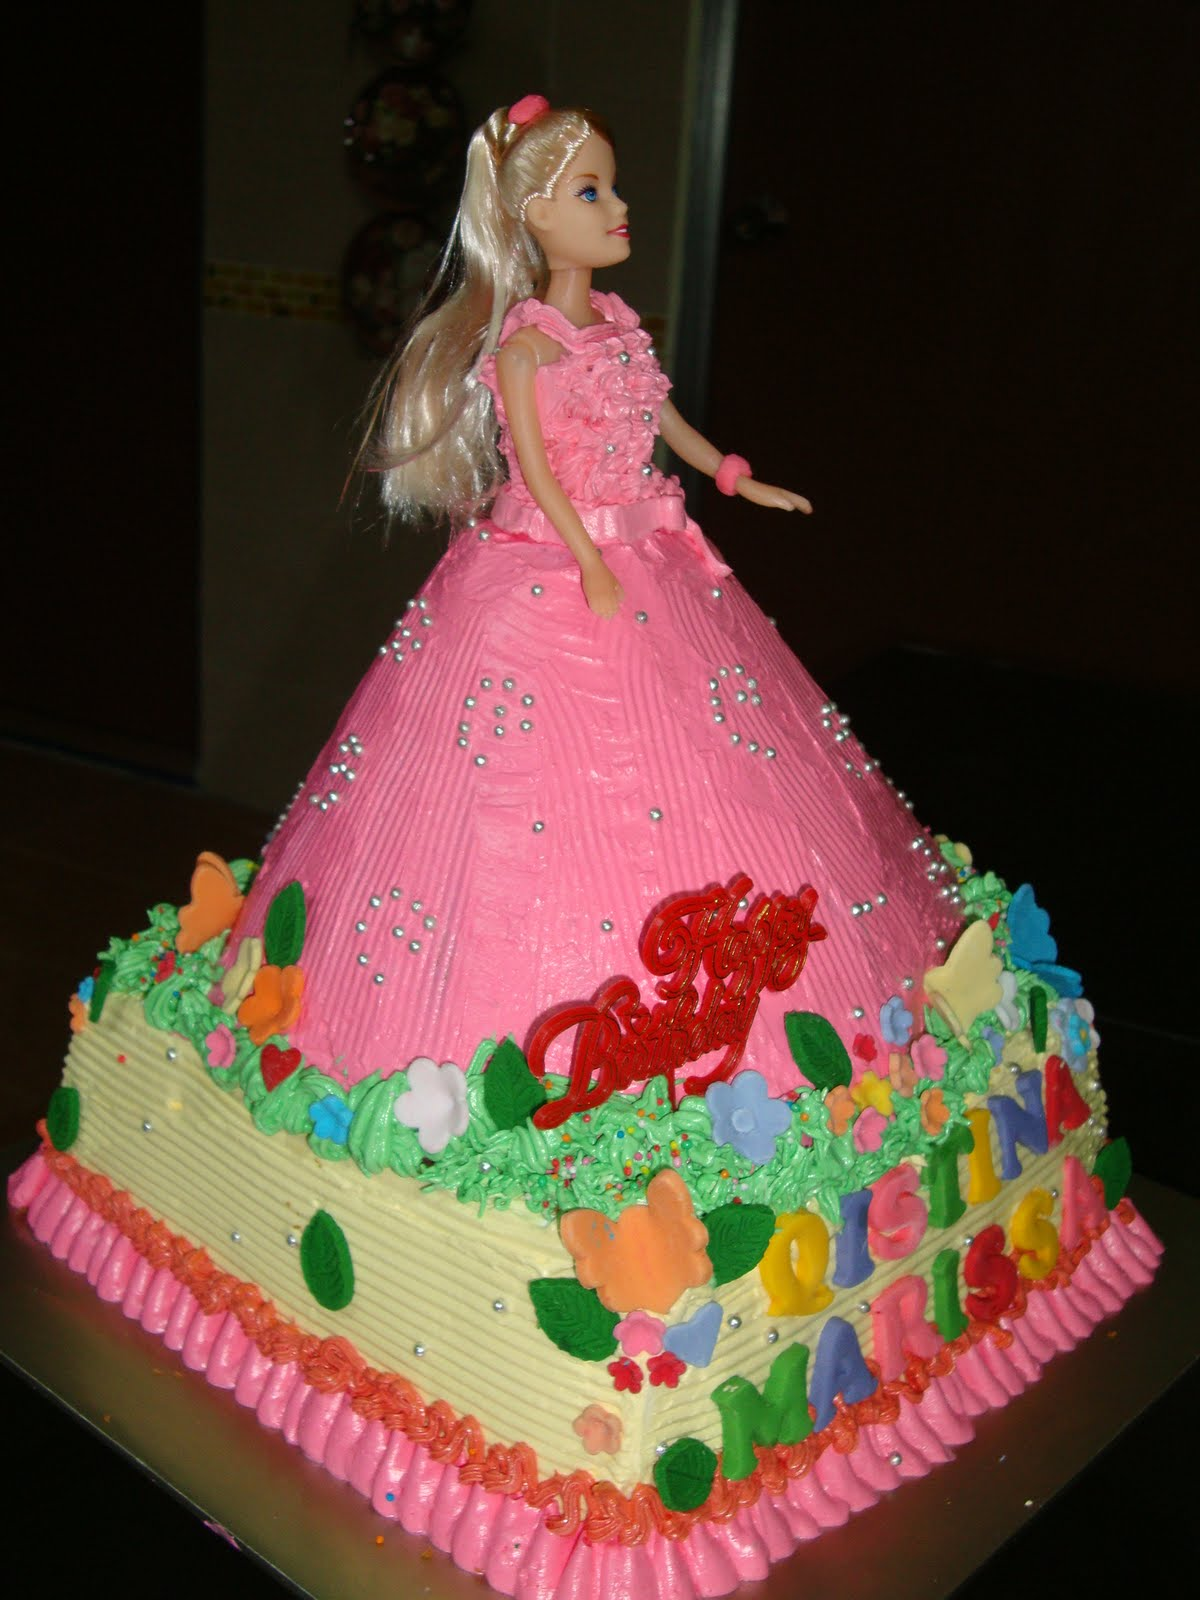 Images Of A Barbie Cake : ninie cakes house: Barbie Doll Cakes